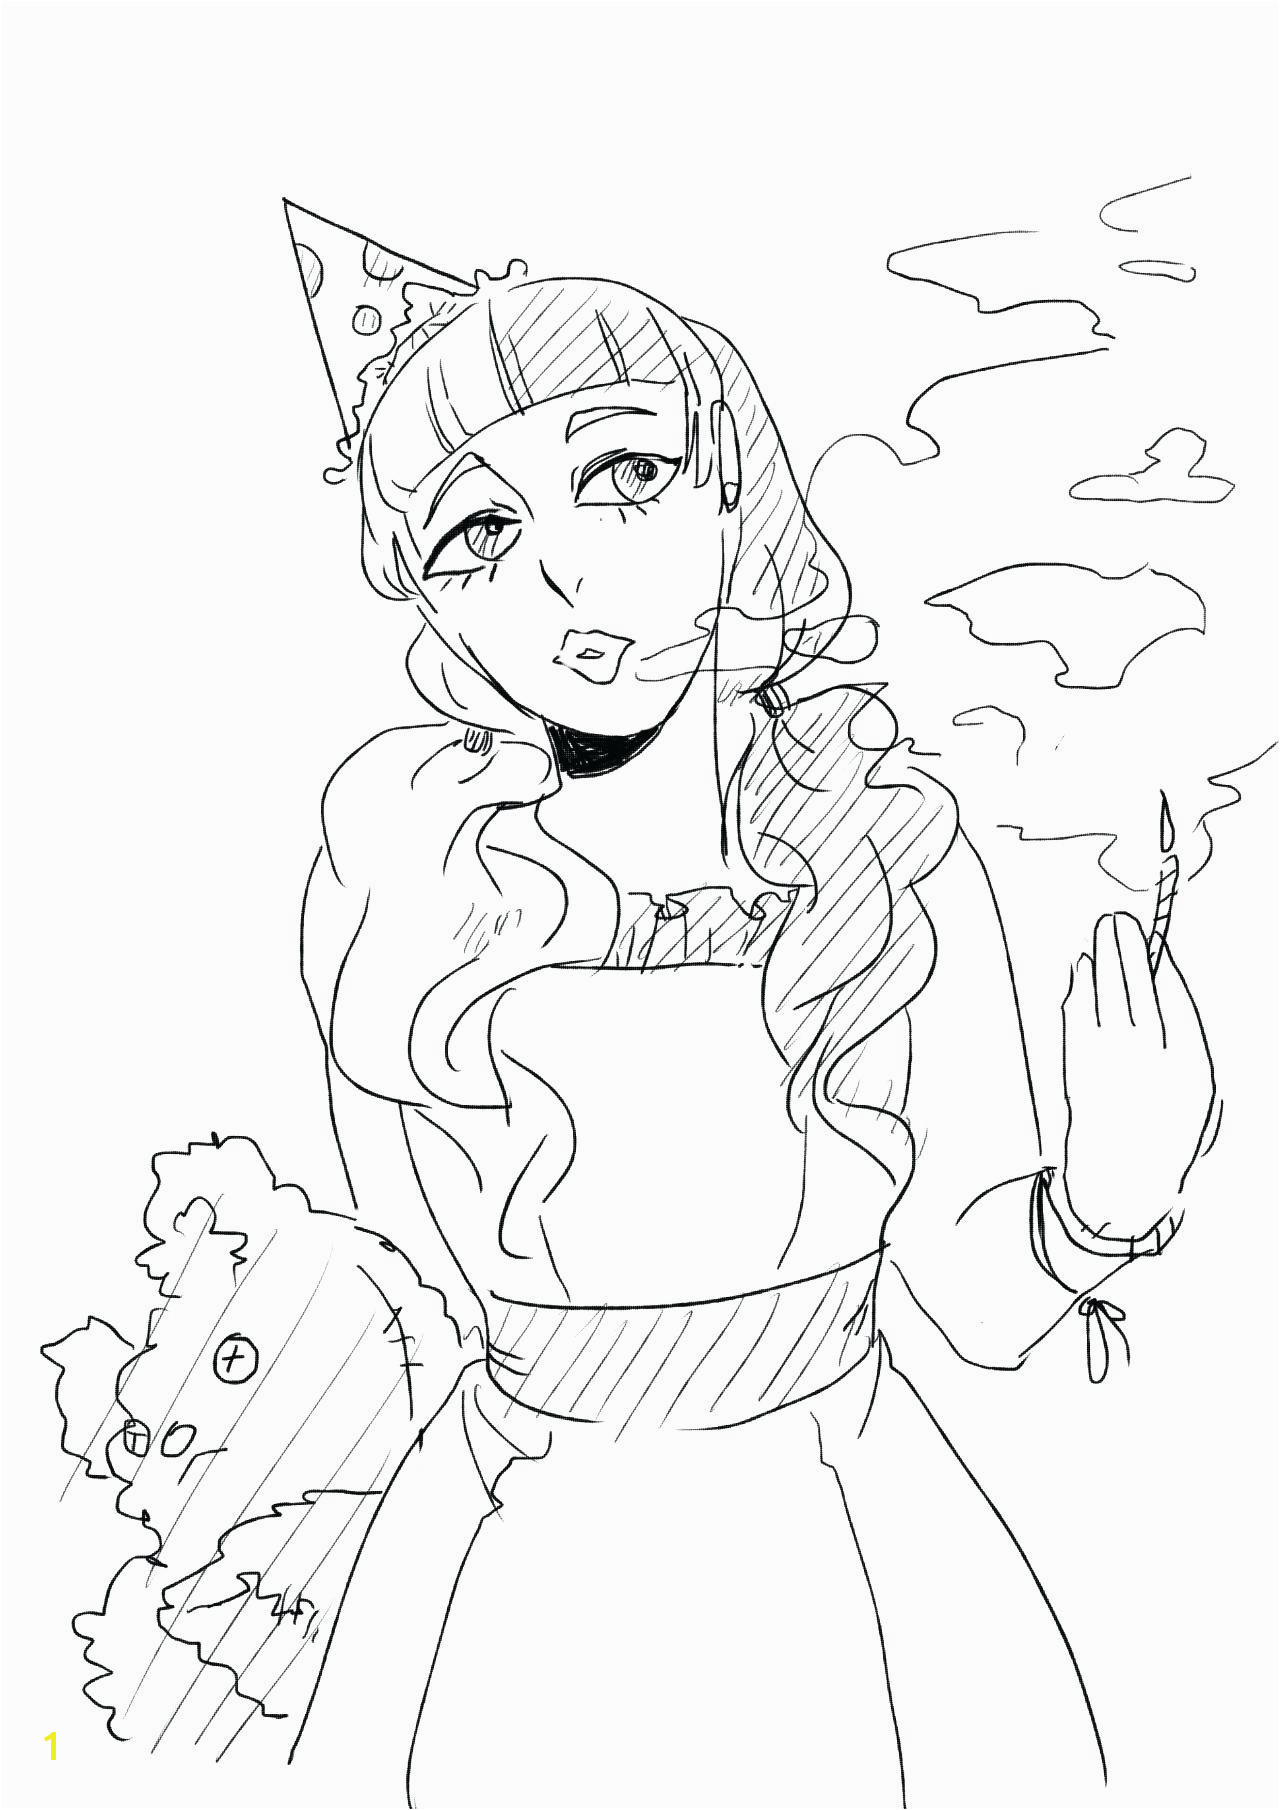 Melanie Martinez Coloring Pages Printable Fresh Melanie Martinez Cry Baby Coloring Book Pages Flower